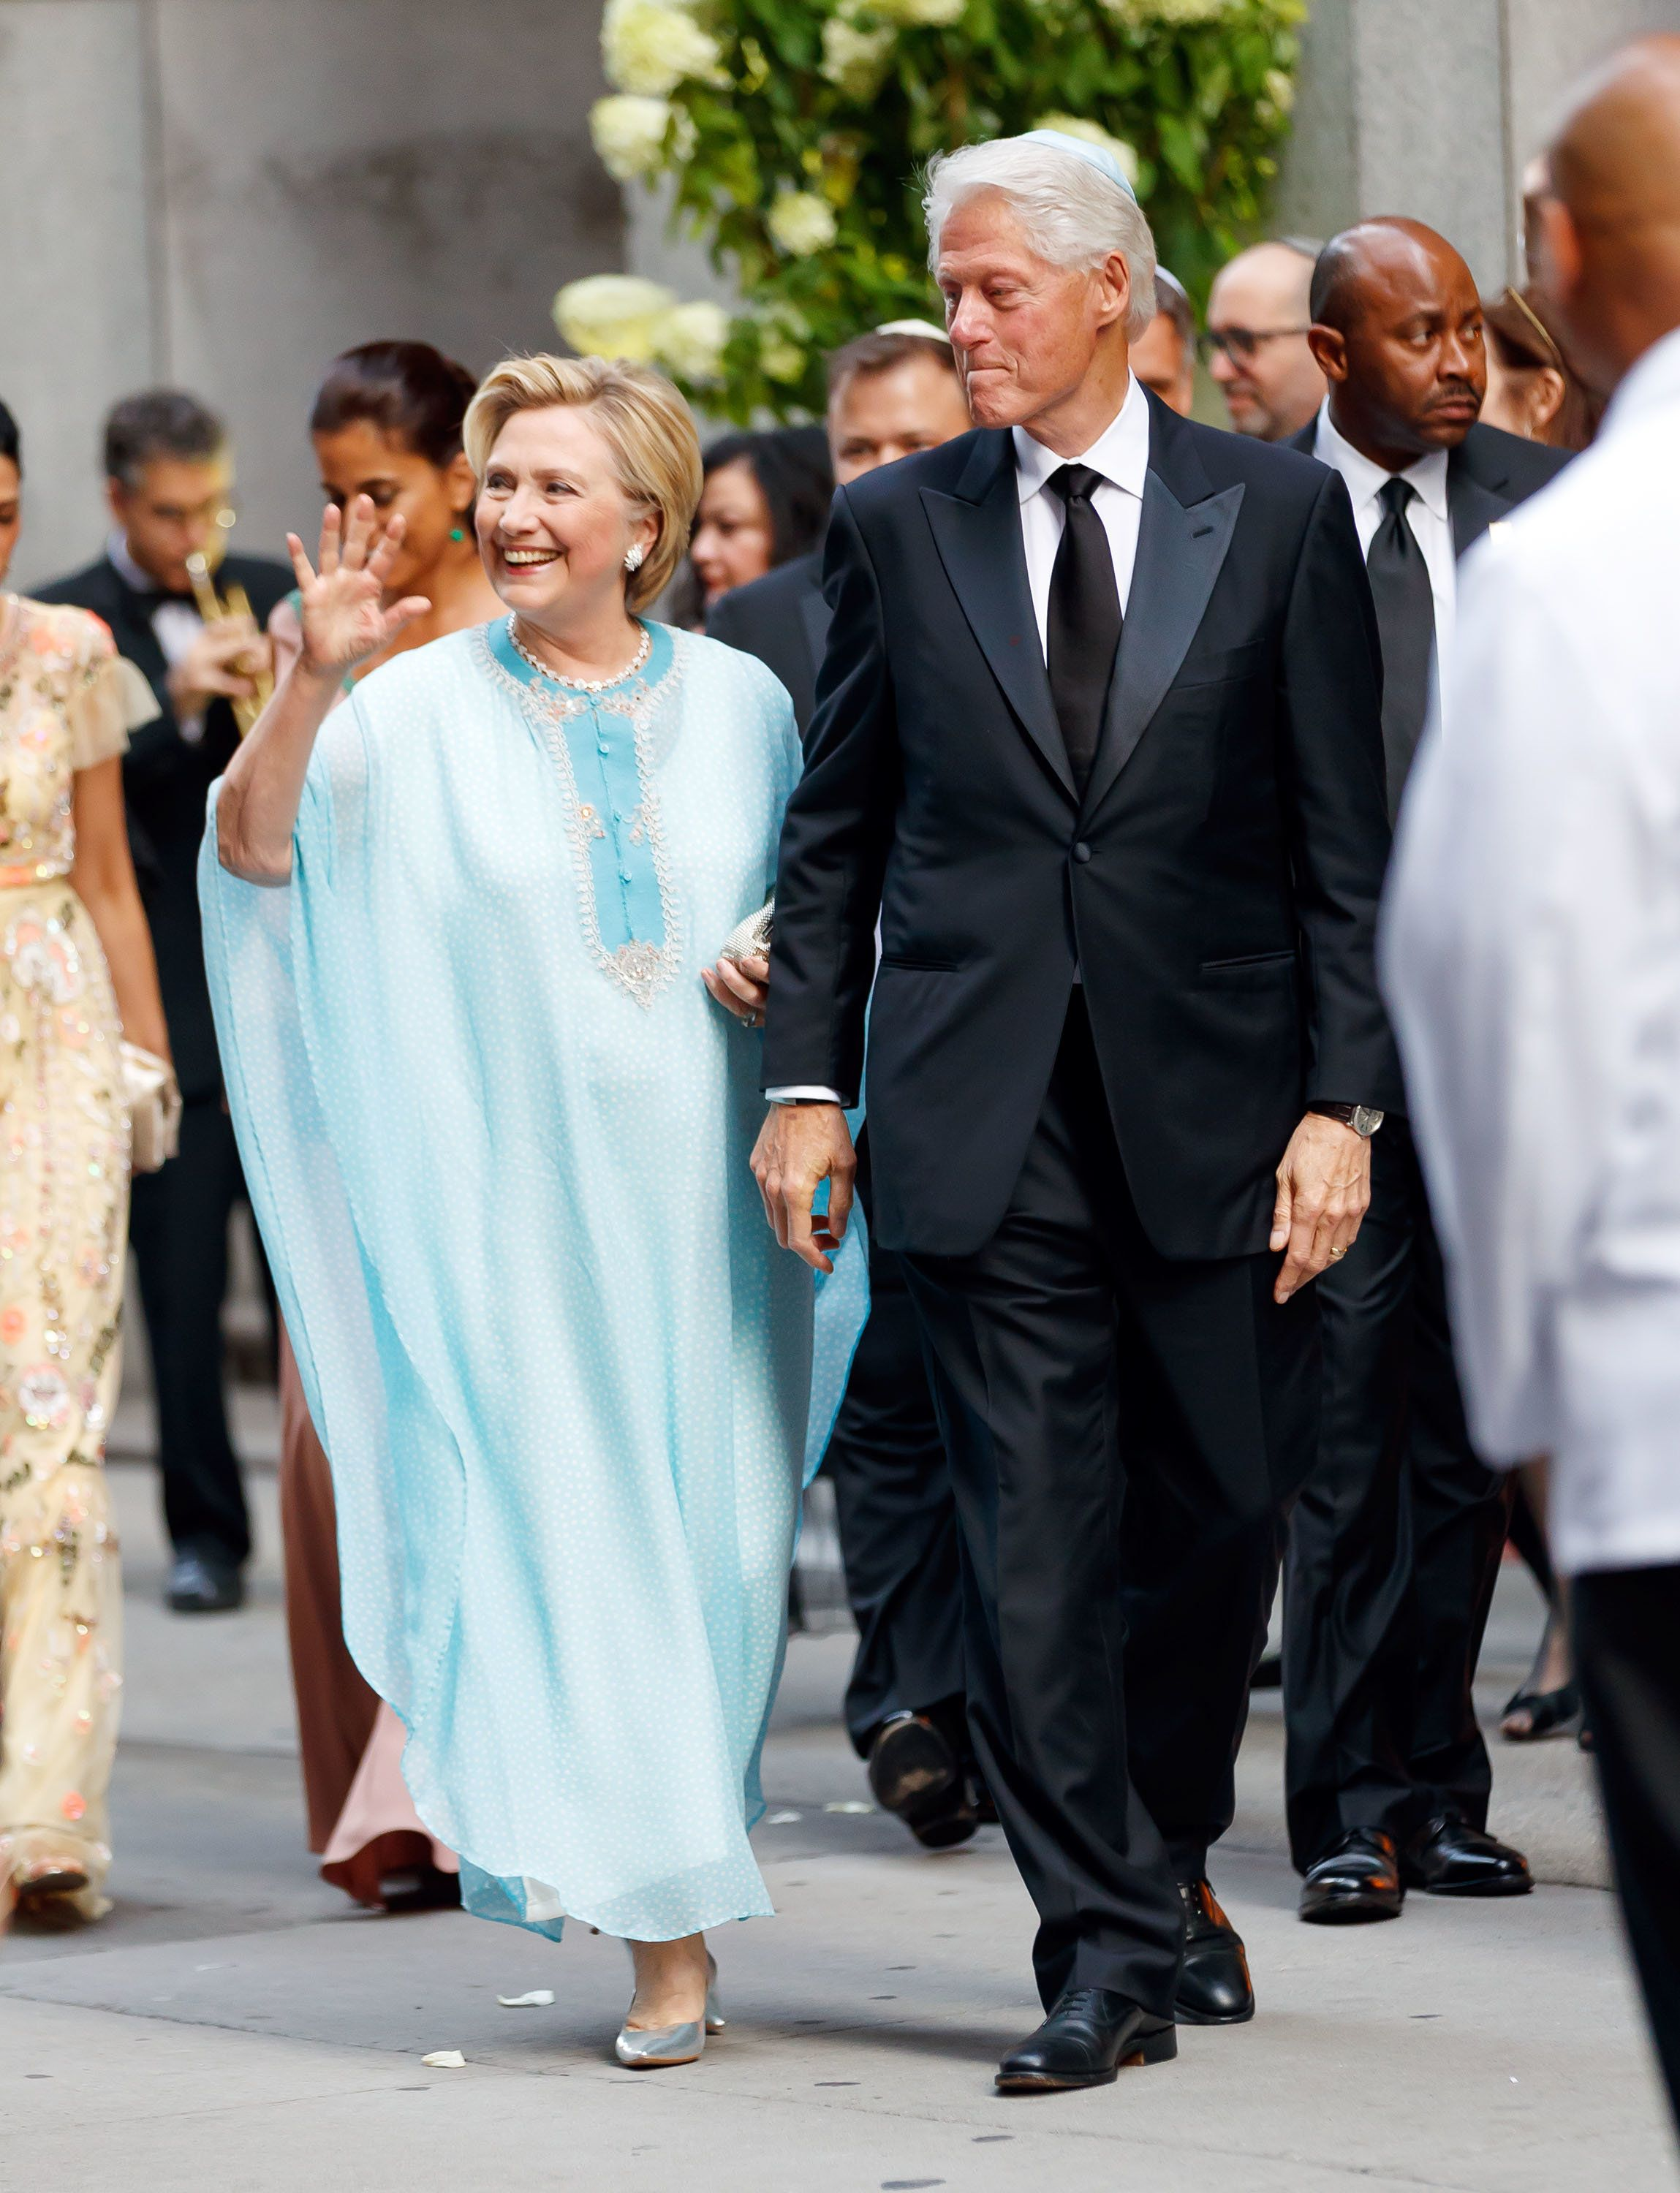 EXCLUSIVE: Hillary Clinton and Bill Clinton arrive at top advisor and financial donor Marc Lasry's daughter Sophie Lasry wedding to football player Alex Swieca in New York.� The star-studded wedding guest list includes Jennifer Lopez and Alex Rodriguez, Tiffany Trump, Jason Kidd,�Michael Strahan, Huma Abedin, and many more.�